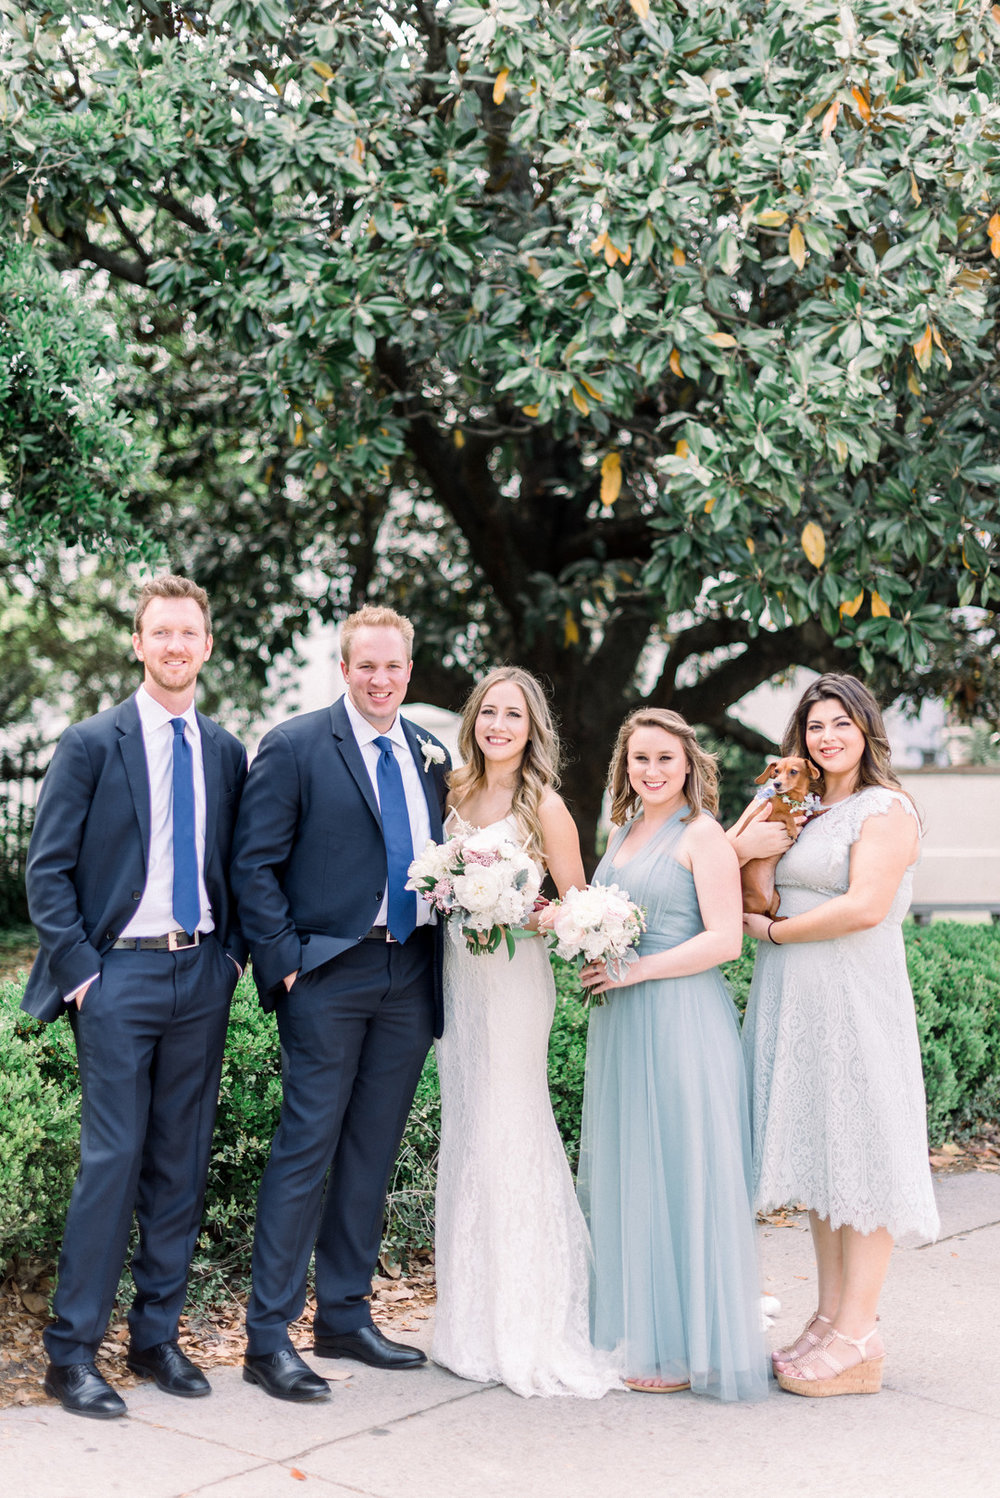 Sara + Gabe: Intimate Charleston Wedding at White Point Garden | Palmetto State Wedding